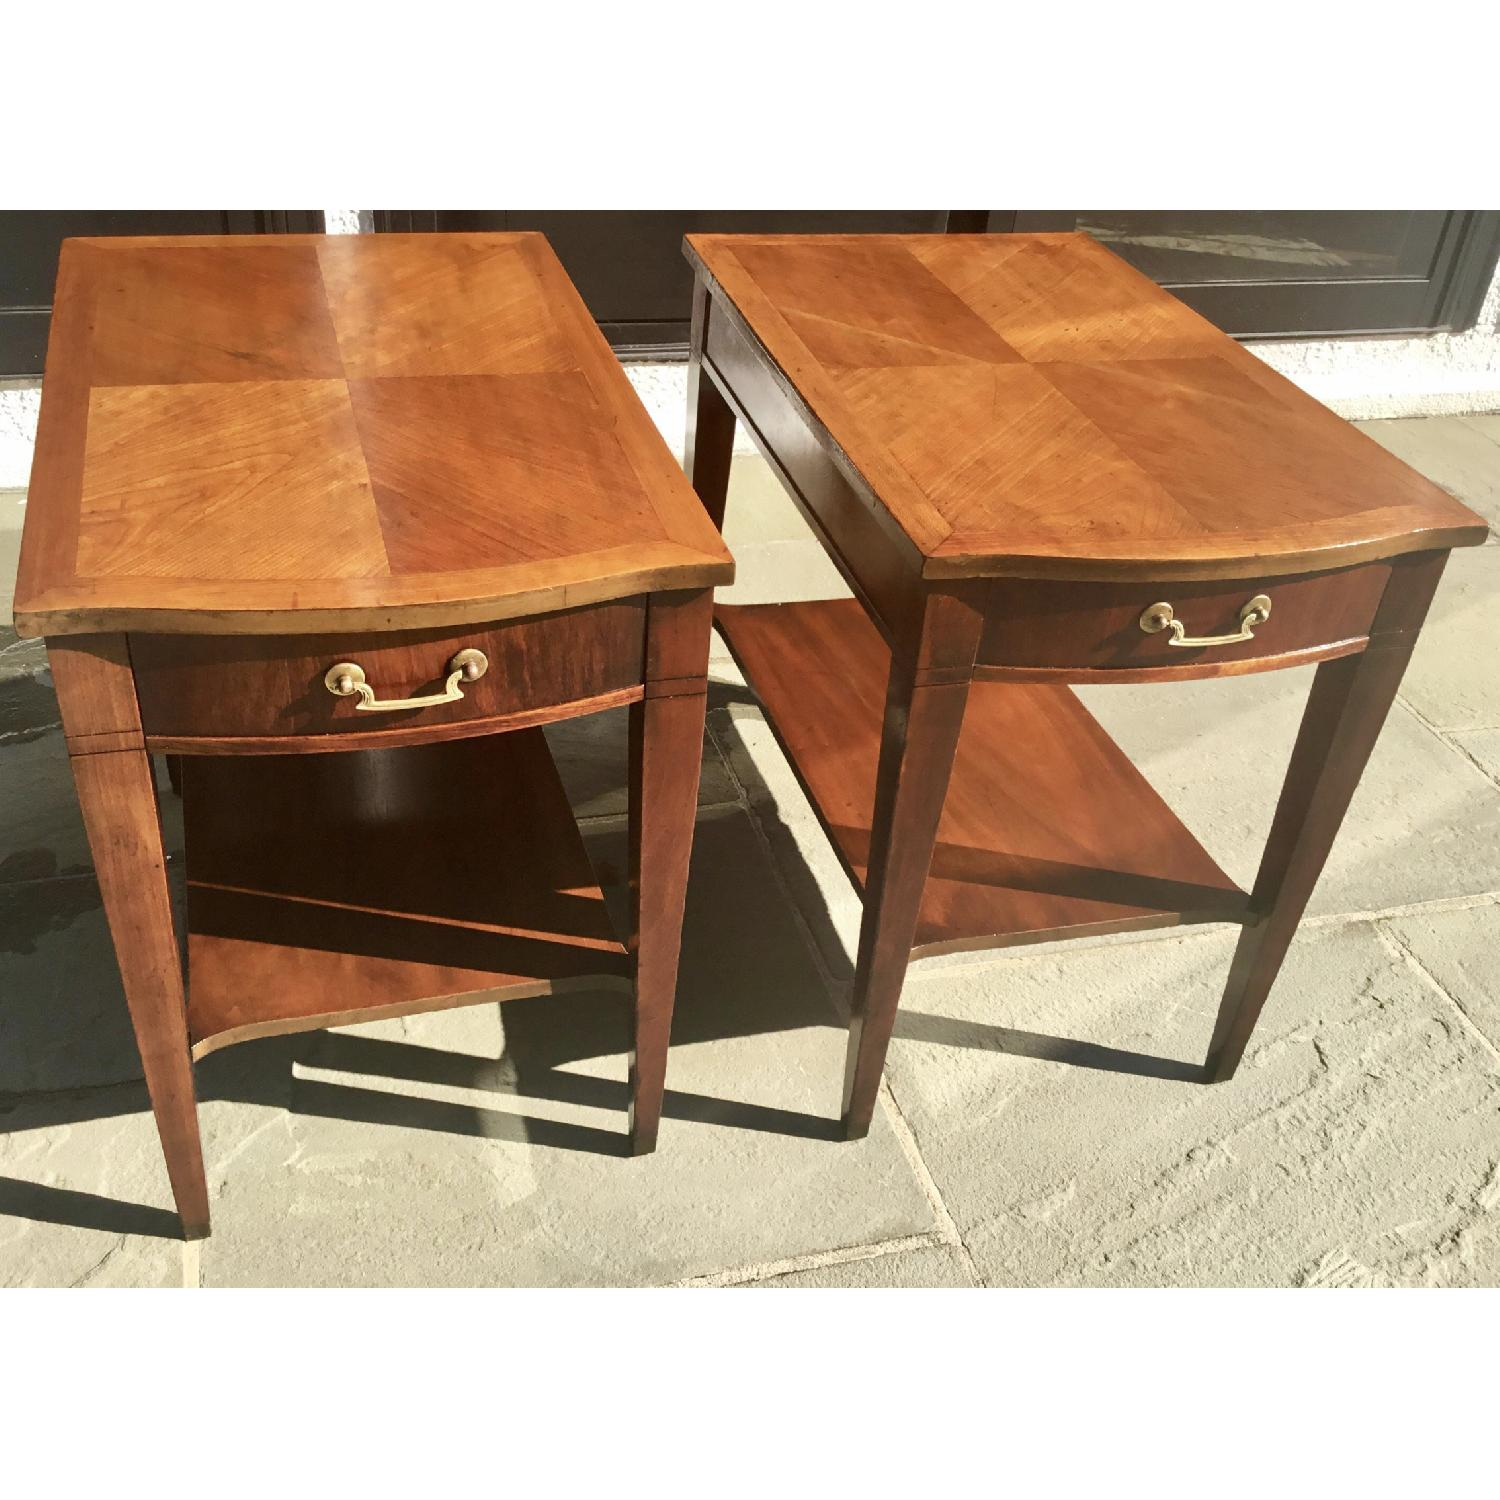 Midmod White Furniture Co. Parquet Top Walnut Side Tables - image-2